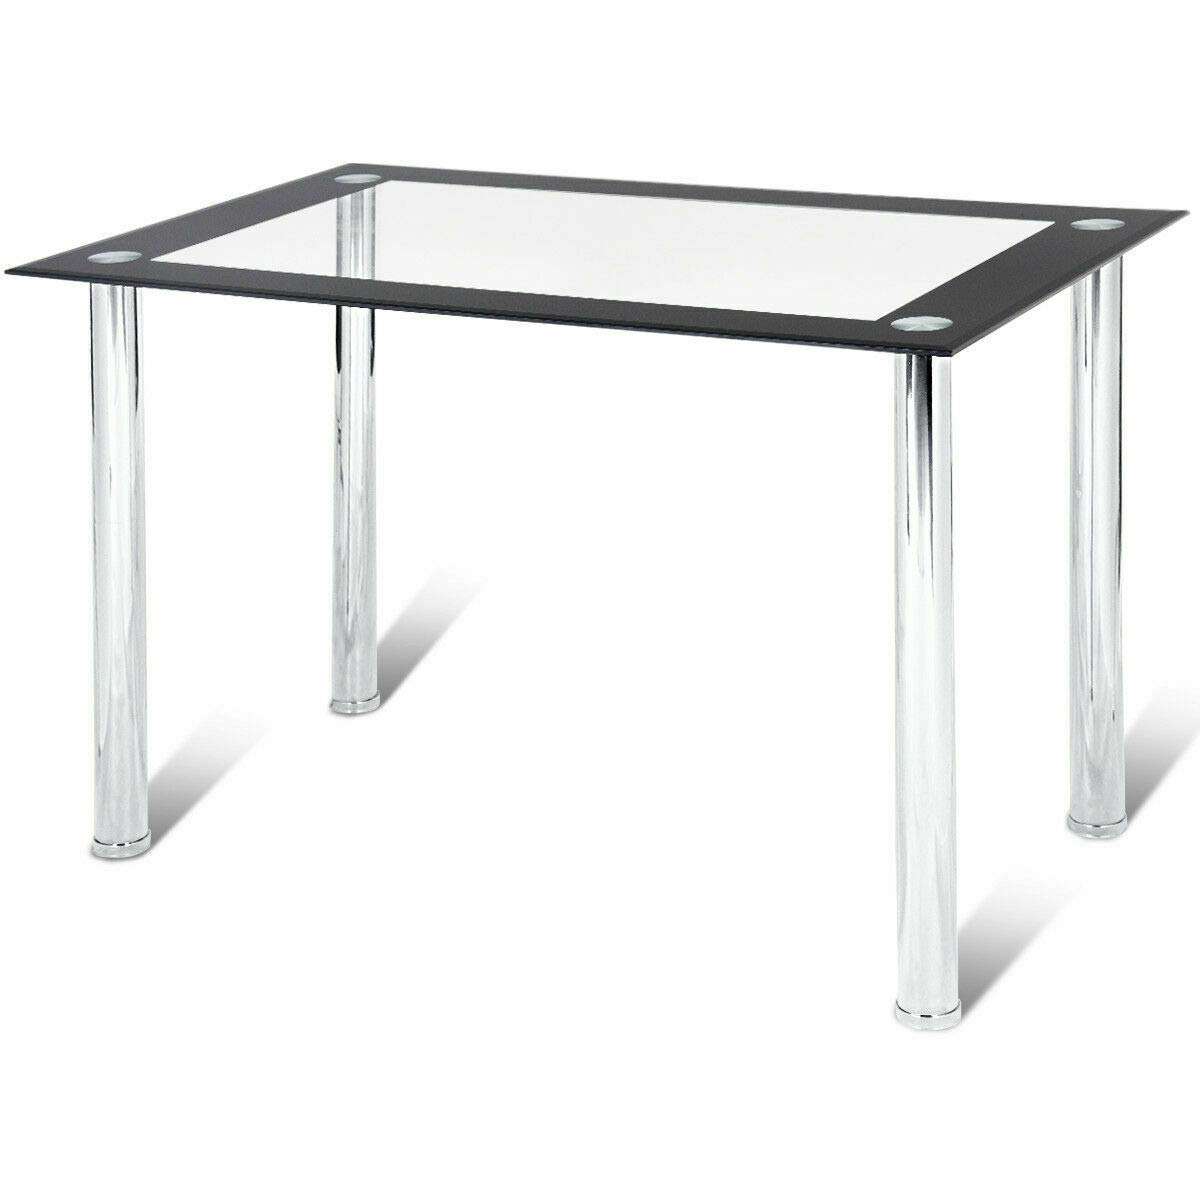 Moon Daughter Clear Table Dining Kitchen Rectangular Tempered Glass & Steel Frame Dining Room